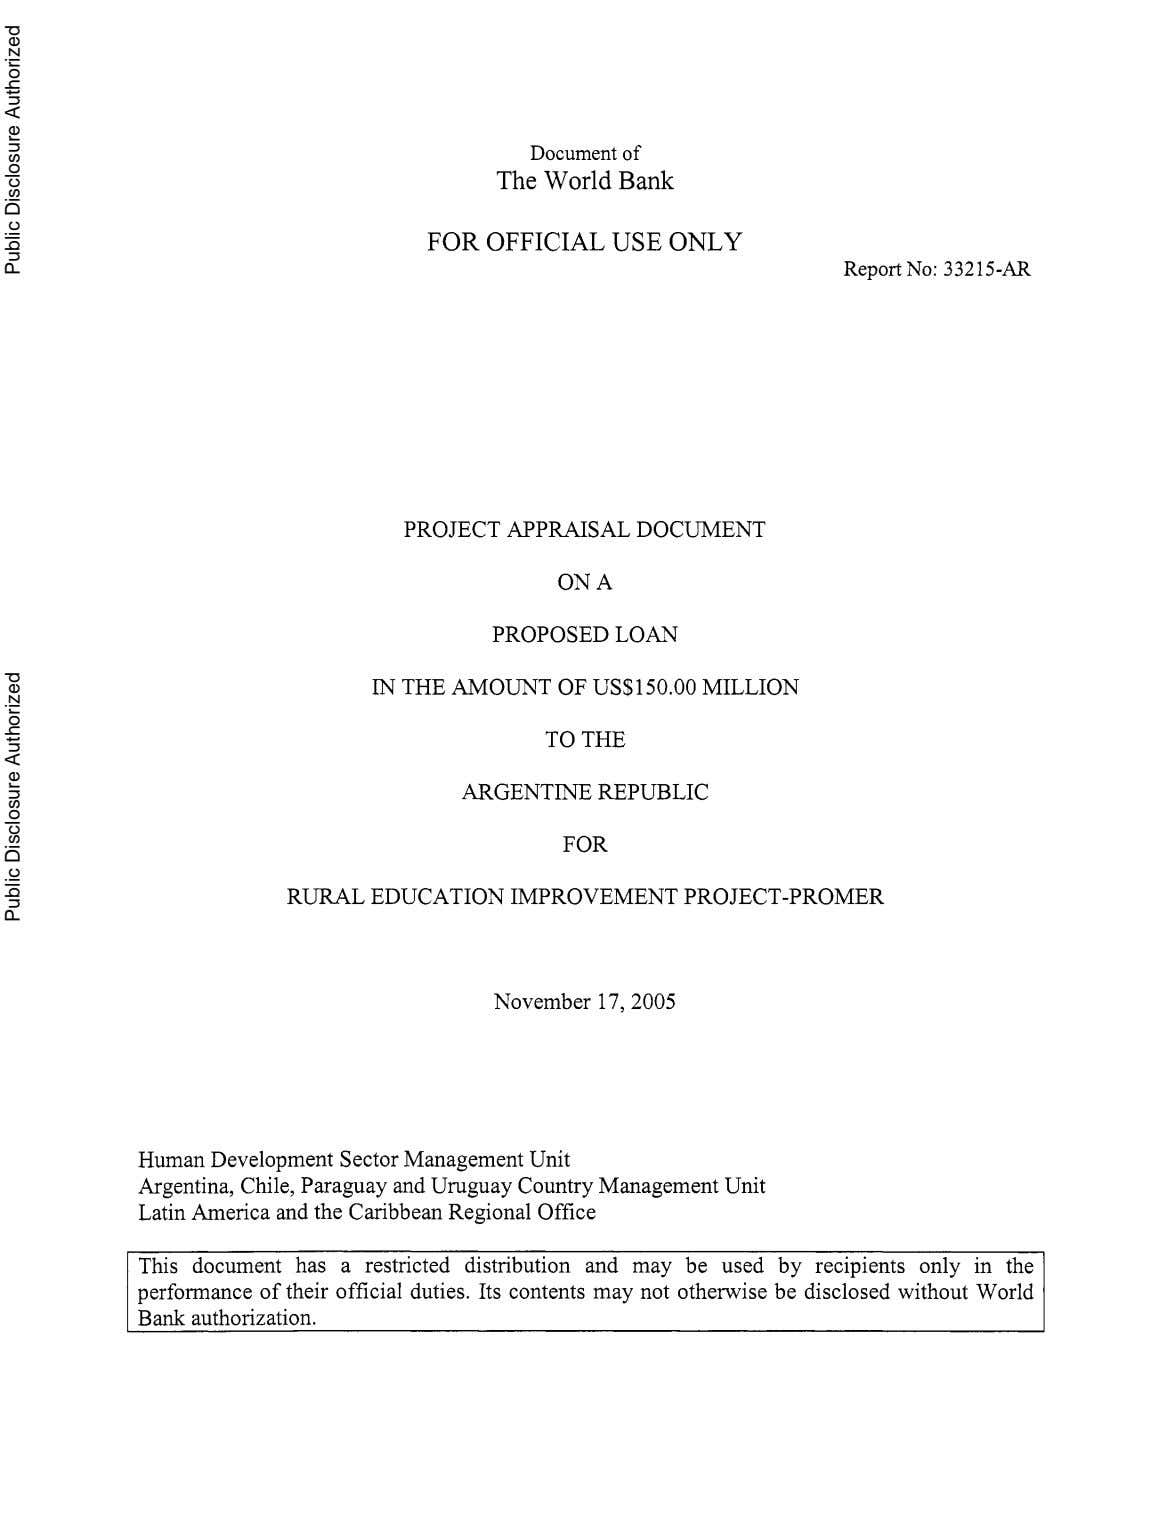 Document of The World Bank FOR OFFICIAL USE ONLY Report No: 33215-AR PROJECT APPRAISAL DOCUMENT